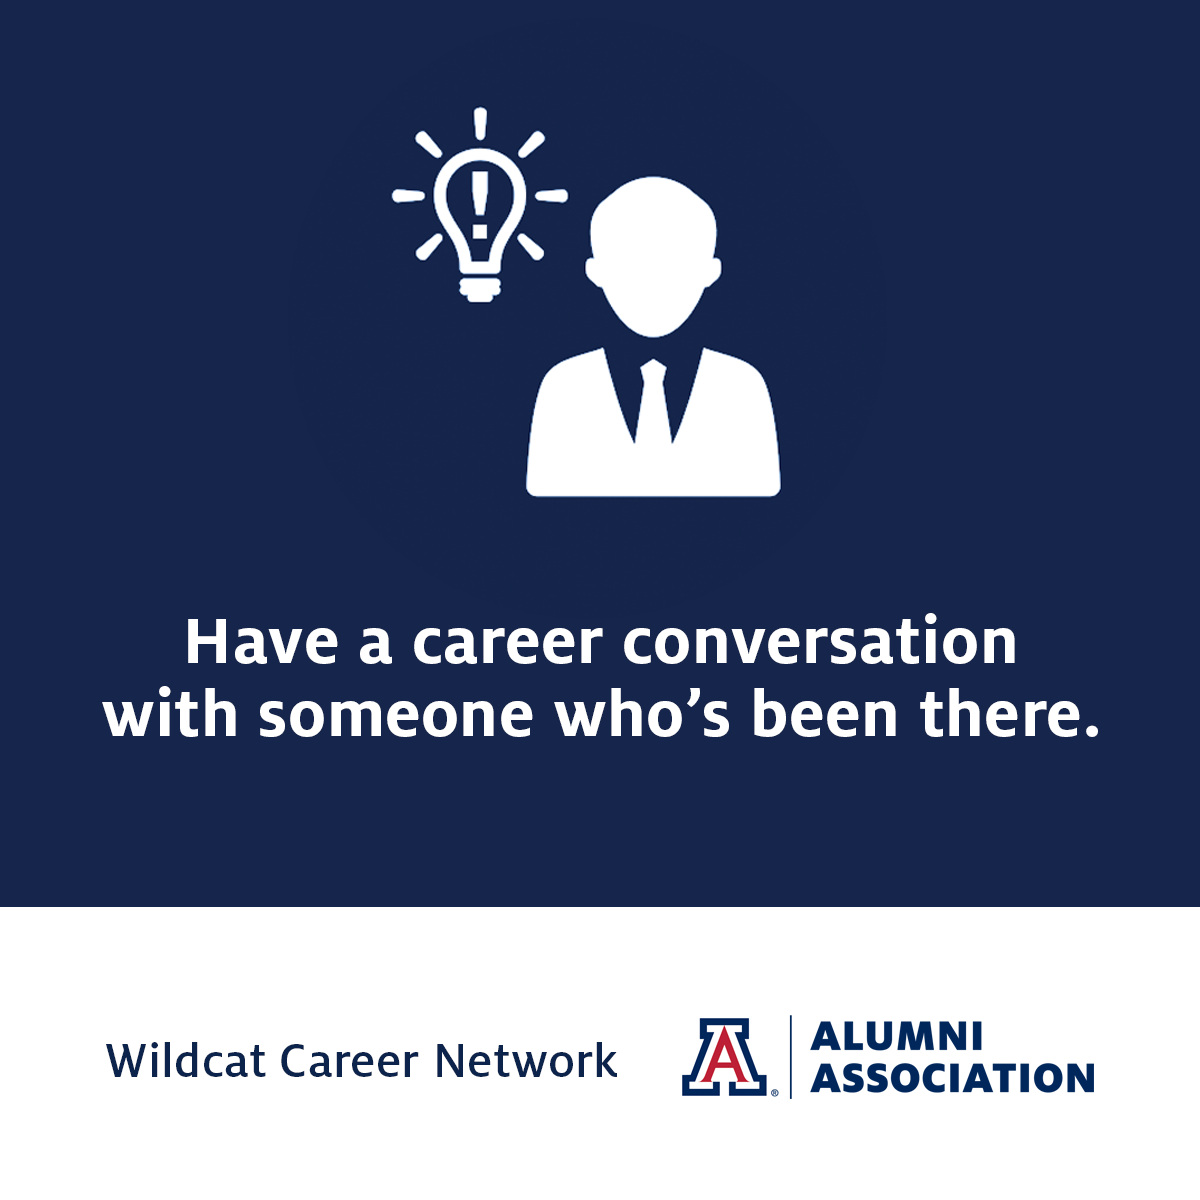 wildcat career network sample messaging to advisees ua alumni build your network middot career conversations